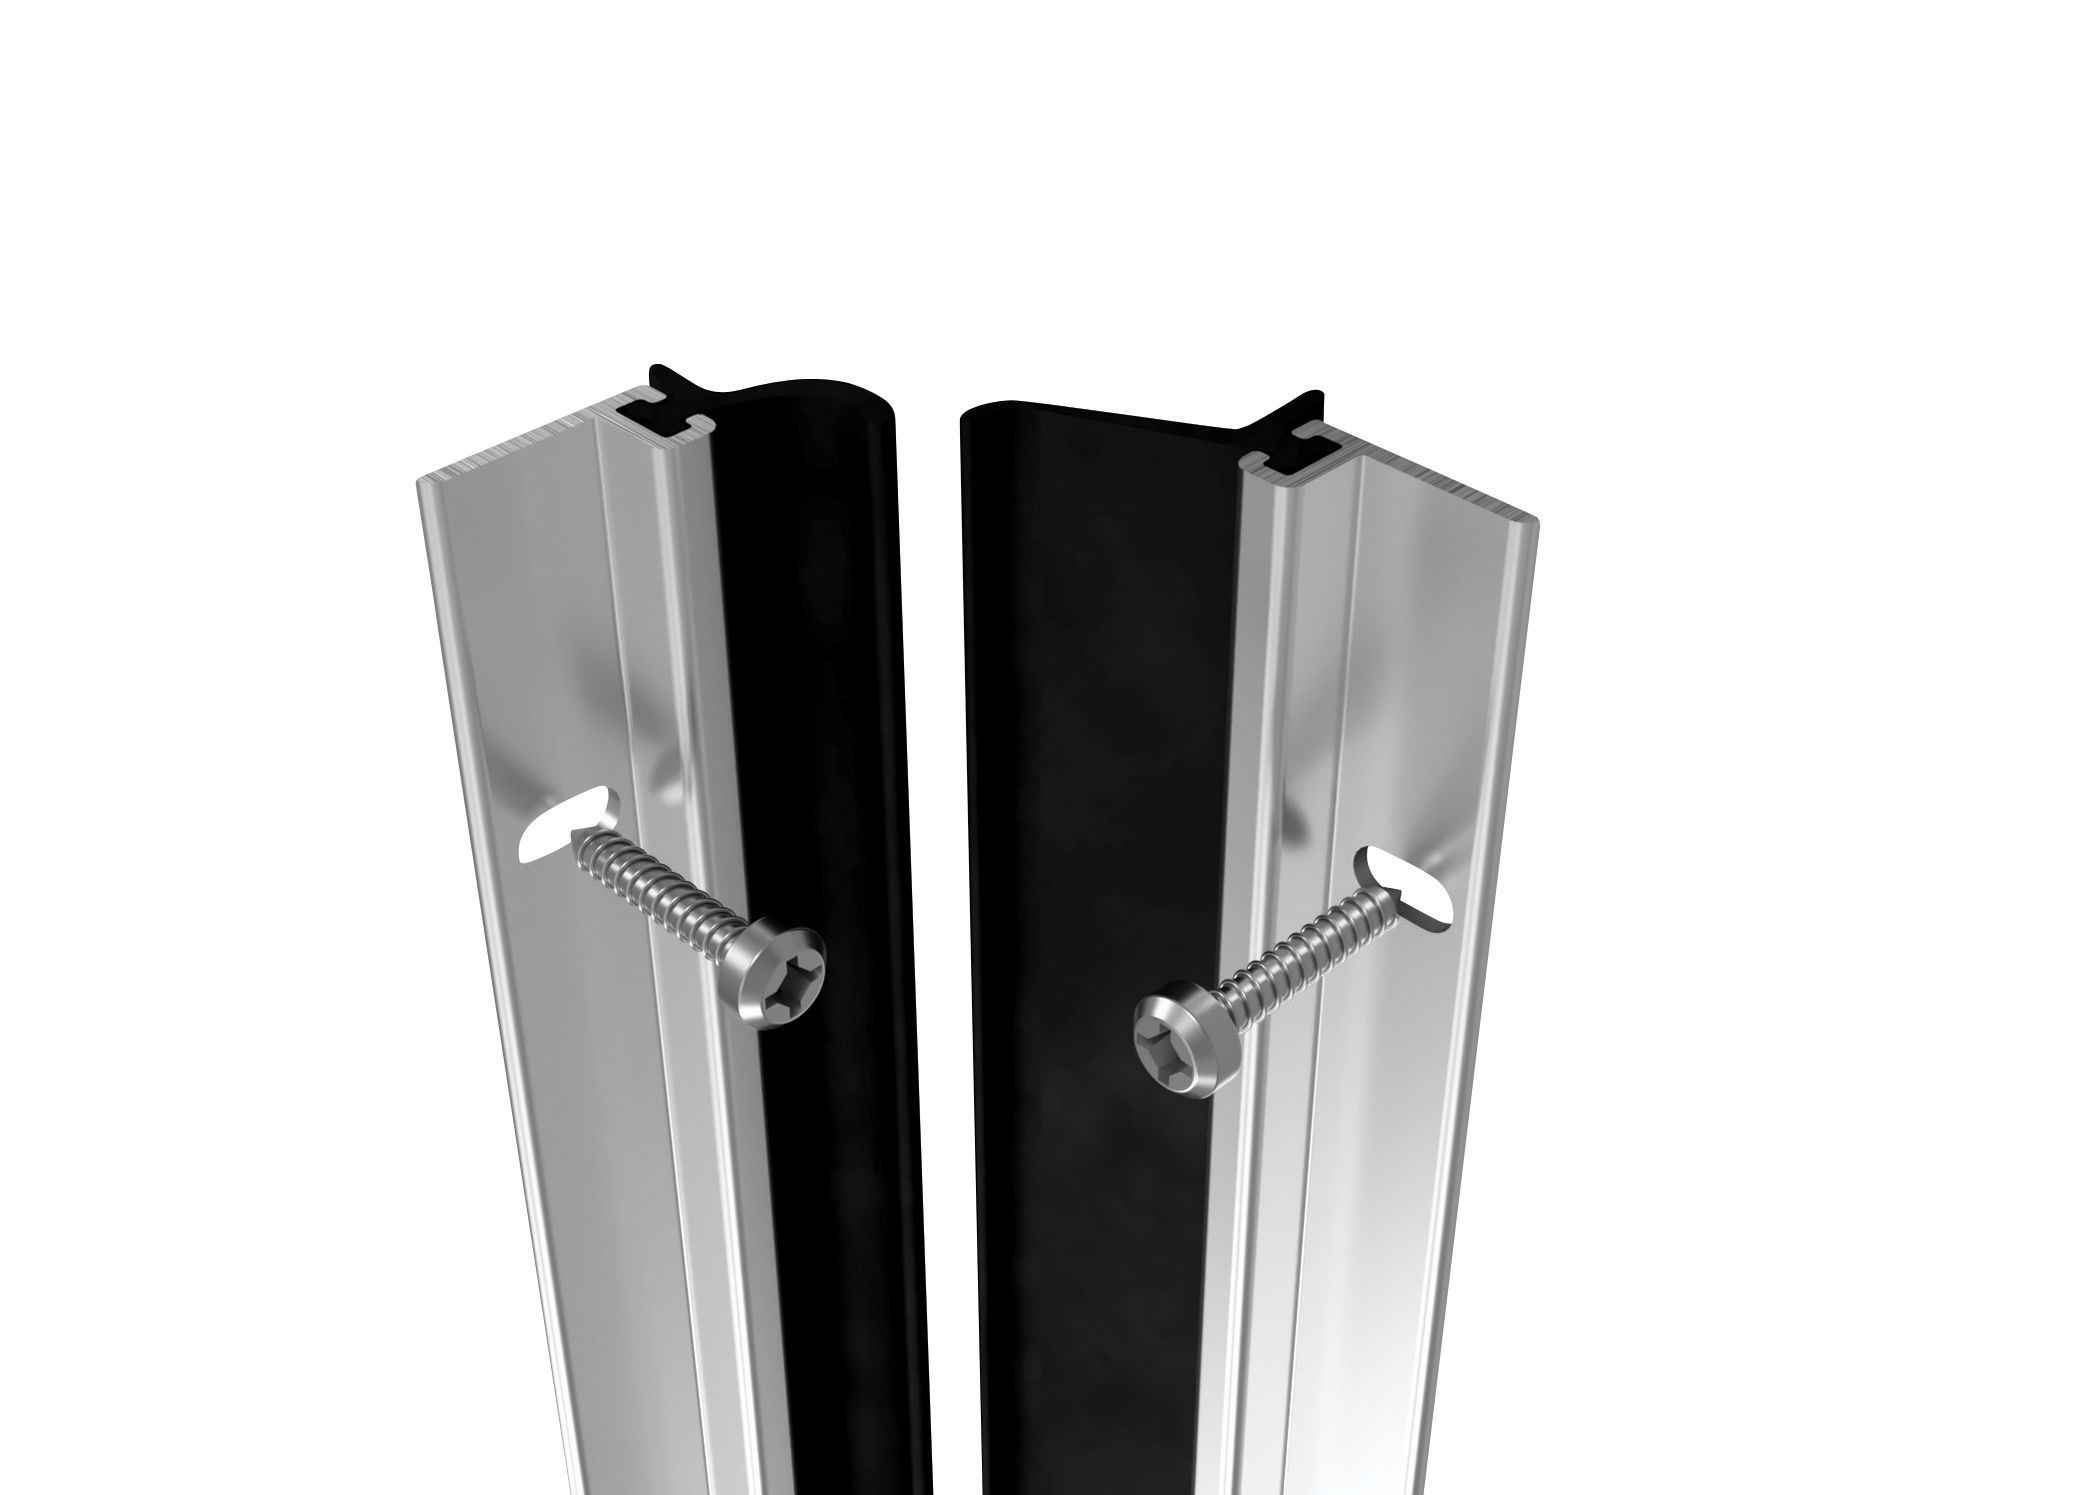 Mouse over image for a closer look. & Wickes Full Door Metal Draught Excluder Aluminium 5028mm | Wickes ... pezcame.com